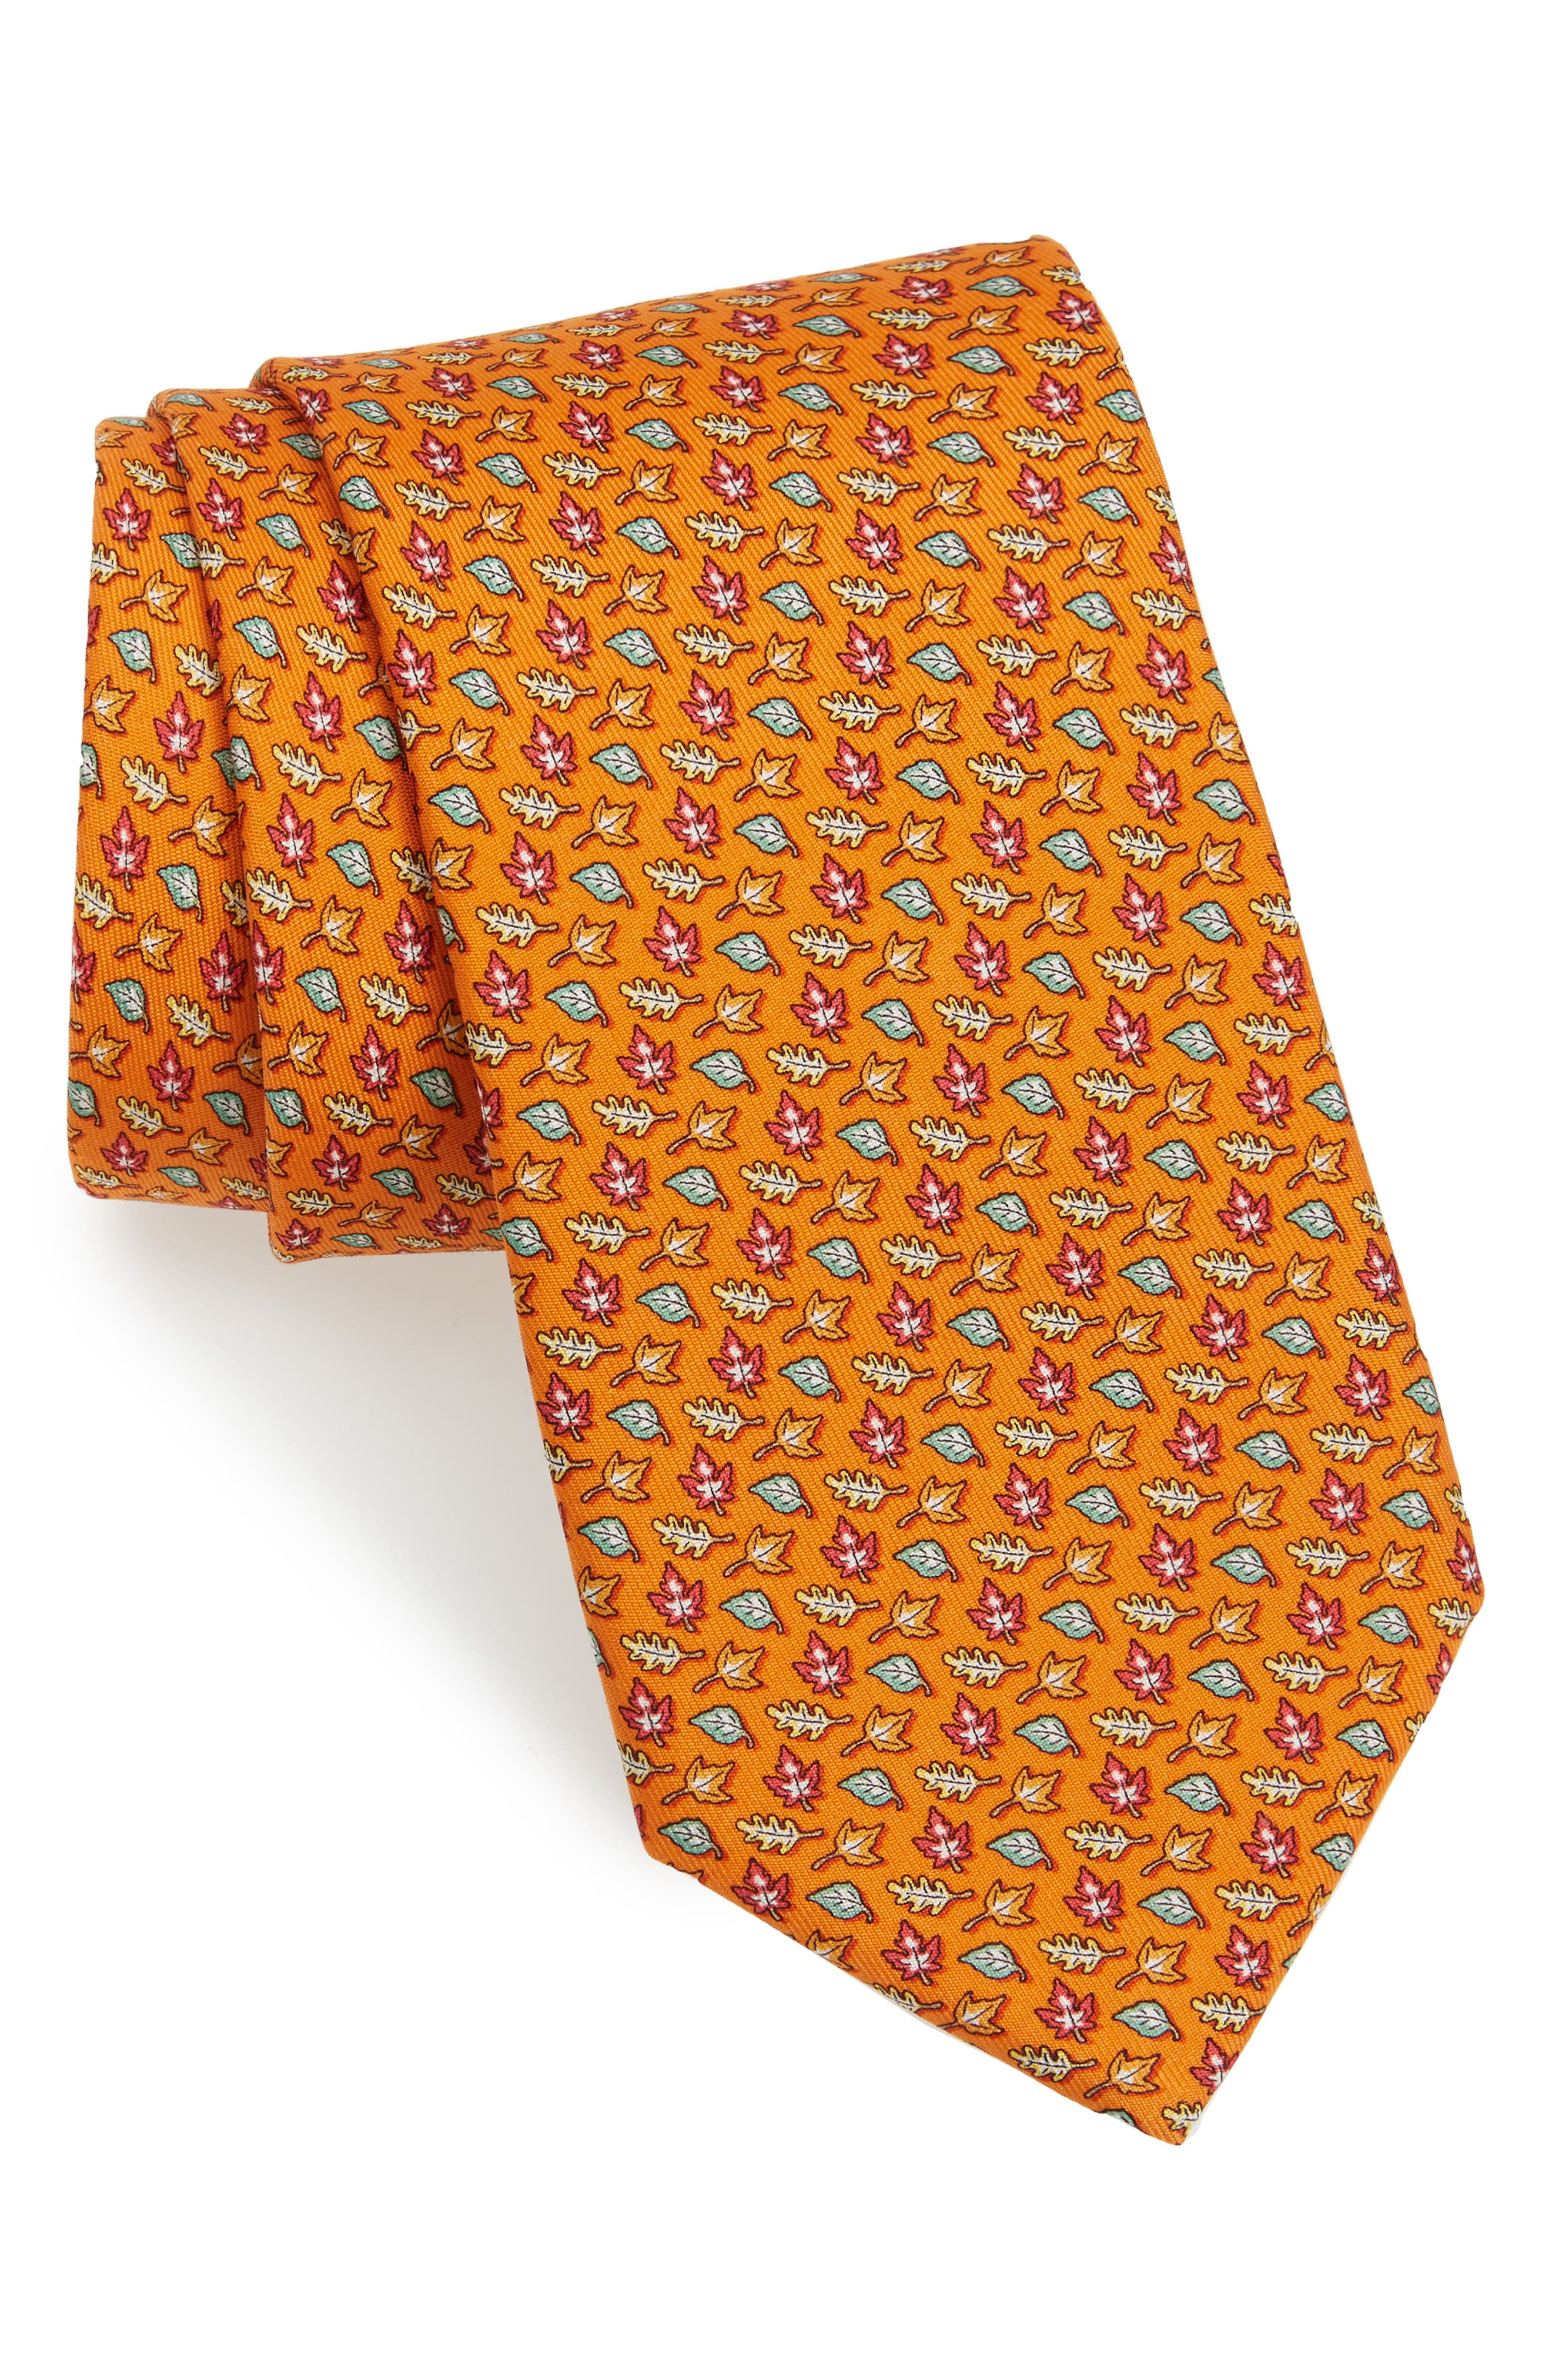 Alternate Image 1 Selected - Vineyard Vines Fall Leaves Silk Tie